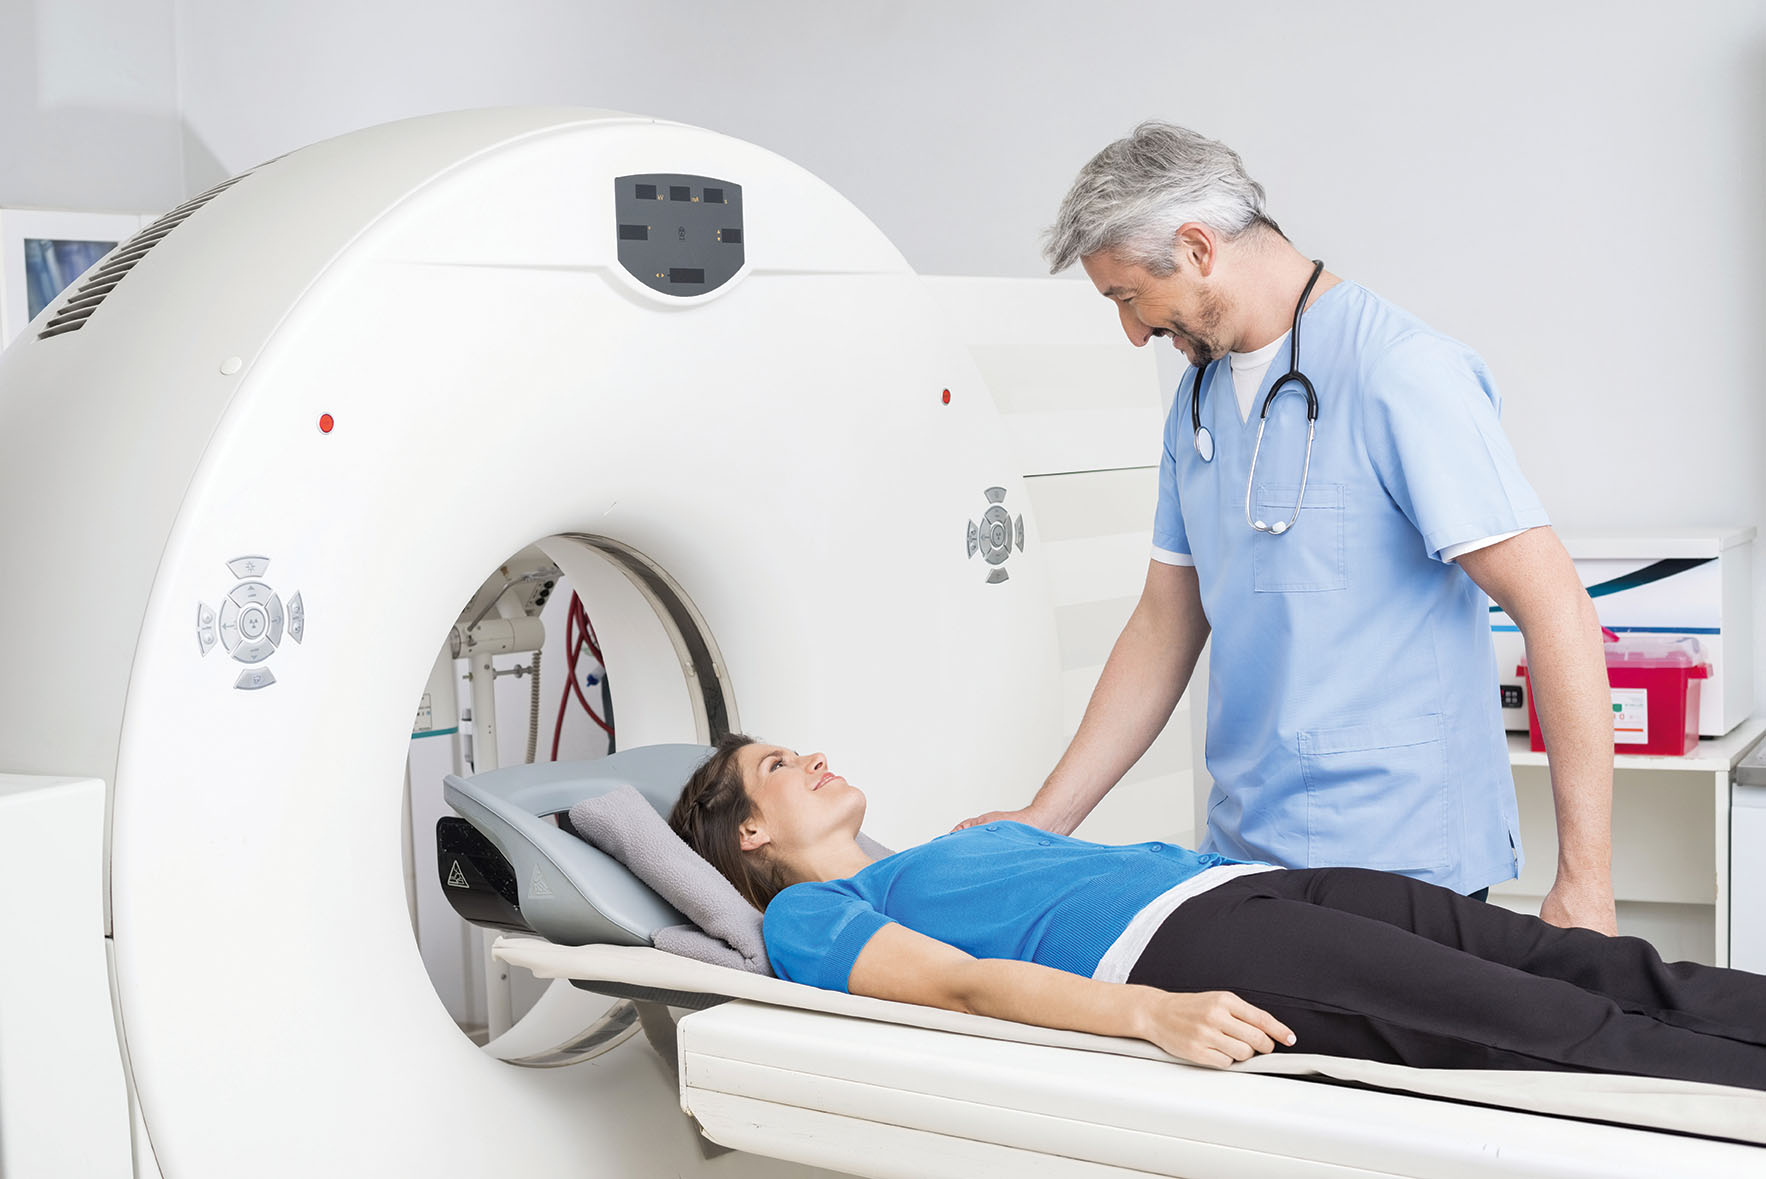 Smiling Doctor Talking To Patient Lying On CT Scan Machine